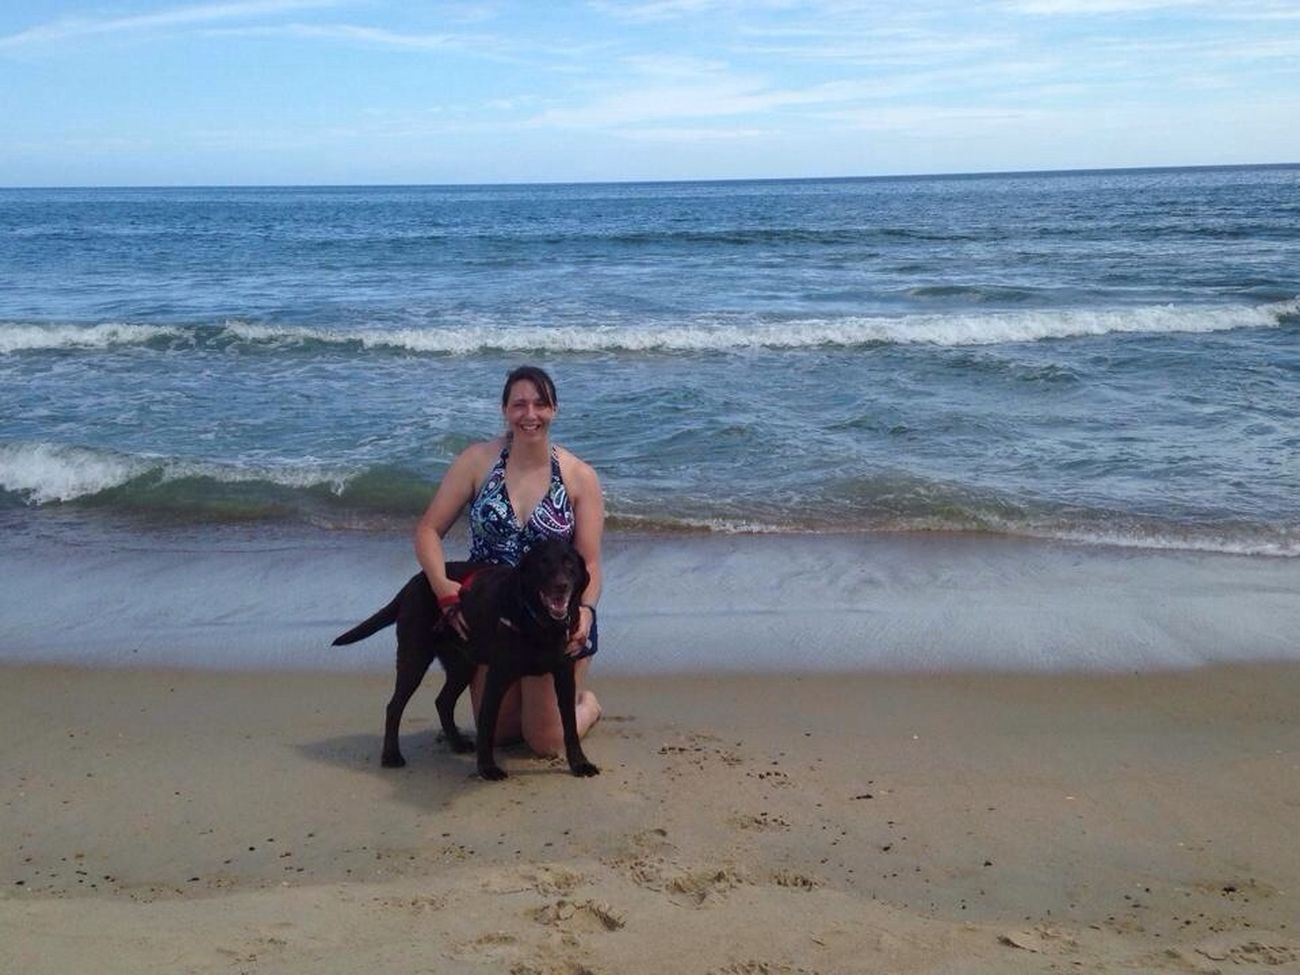 Me and Ted Bffs Dog Love Bonding OBX14